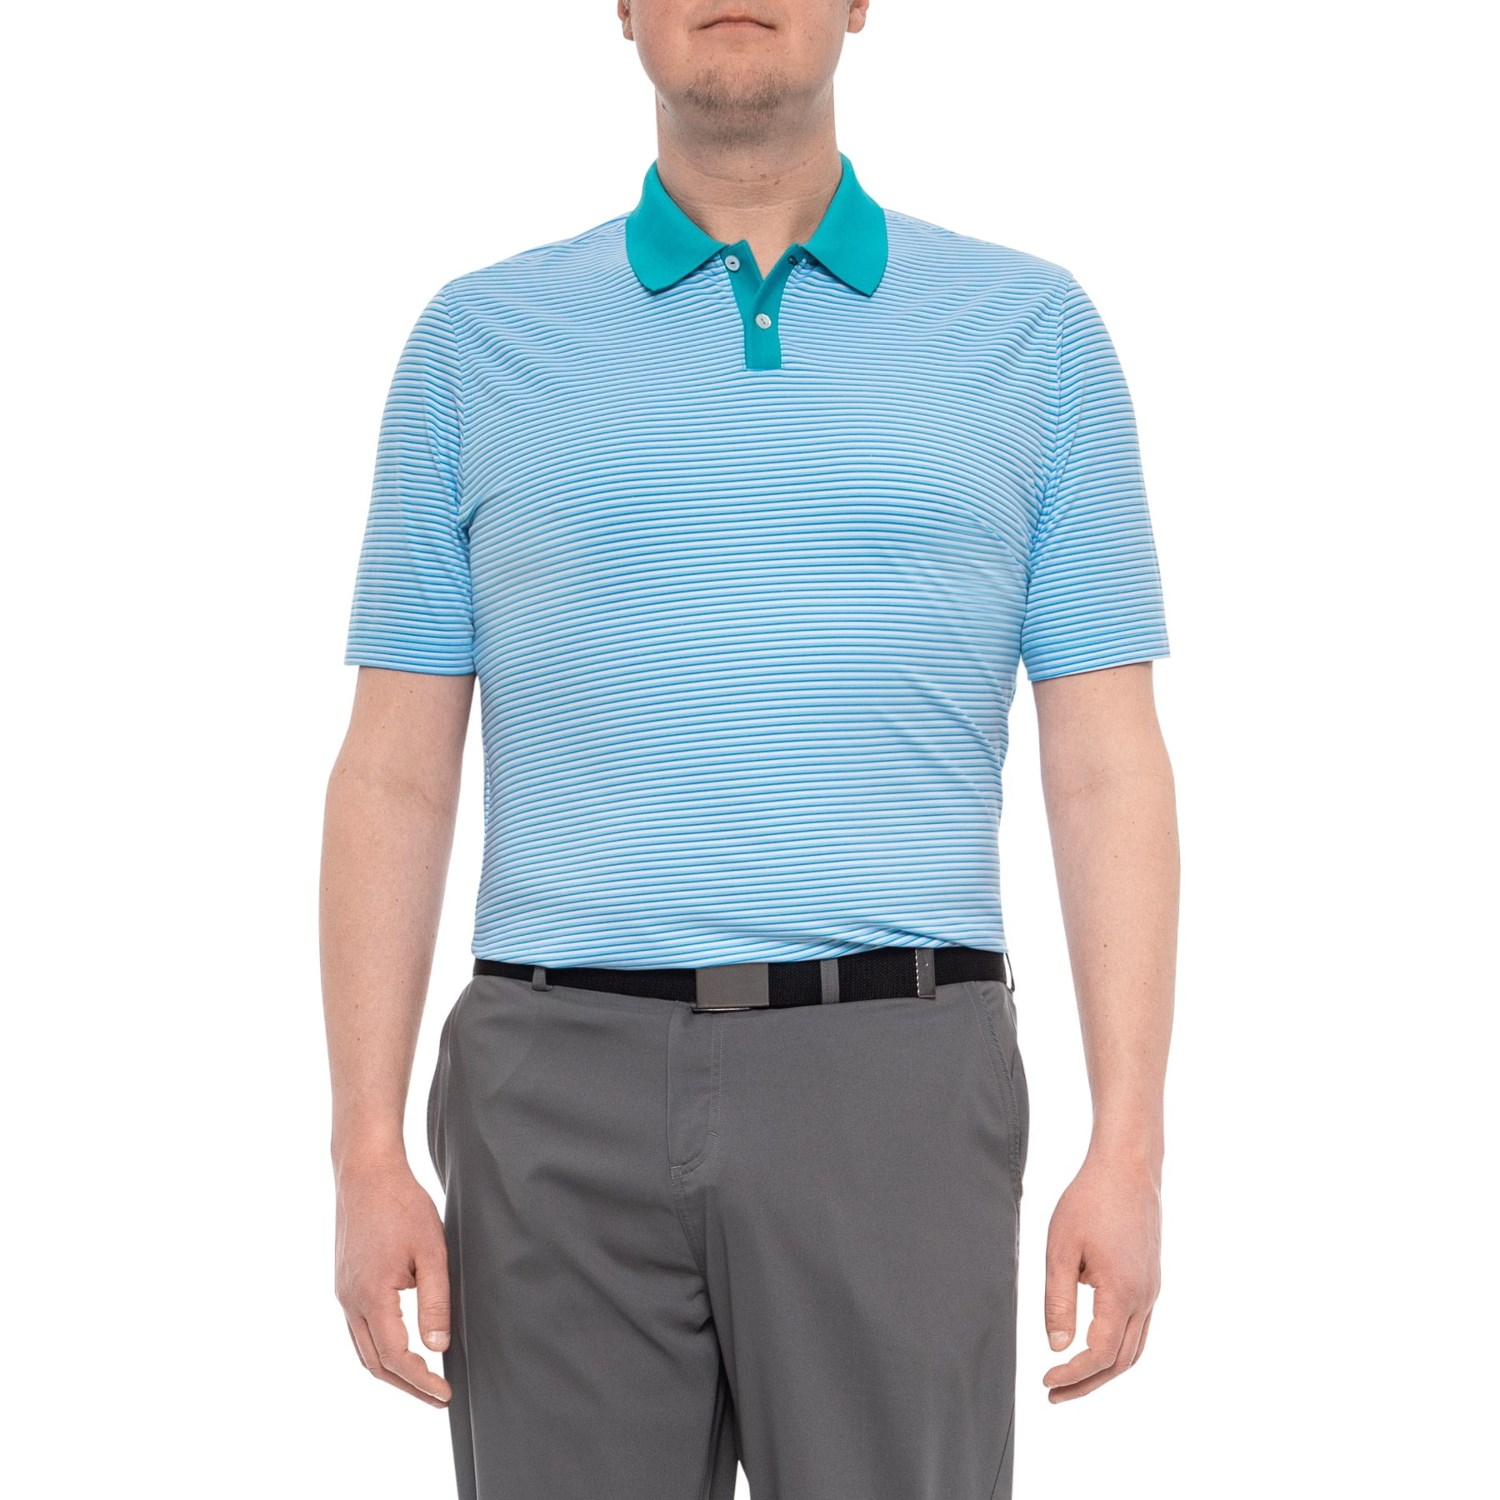 d393c6e204 adidas Adipure Solid Polo Shirt (For Men) - Save 76%